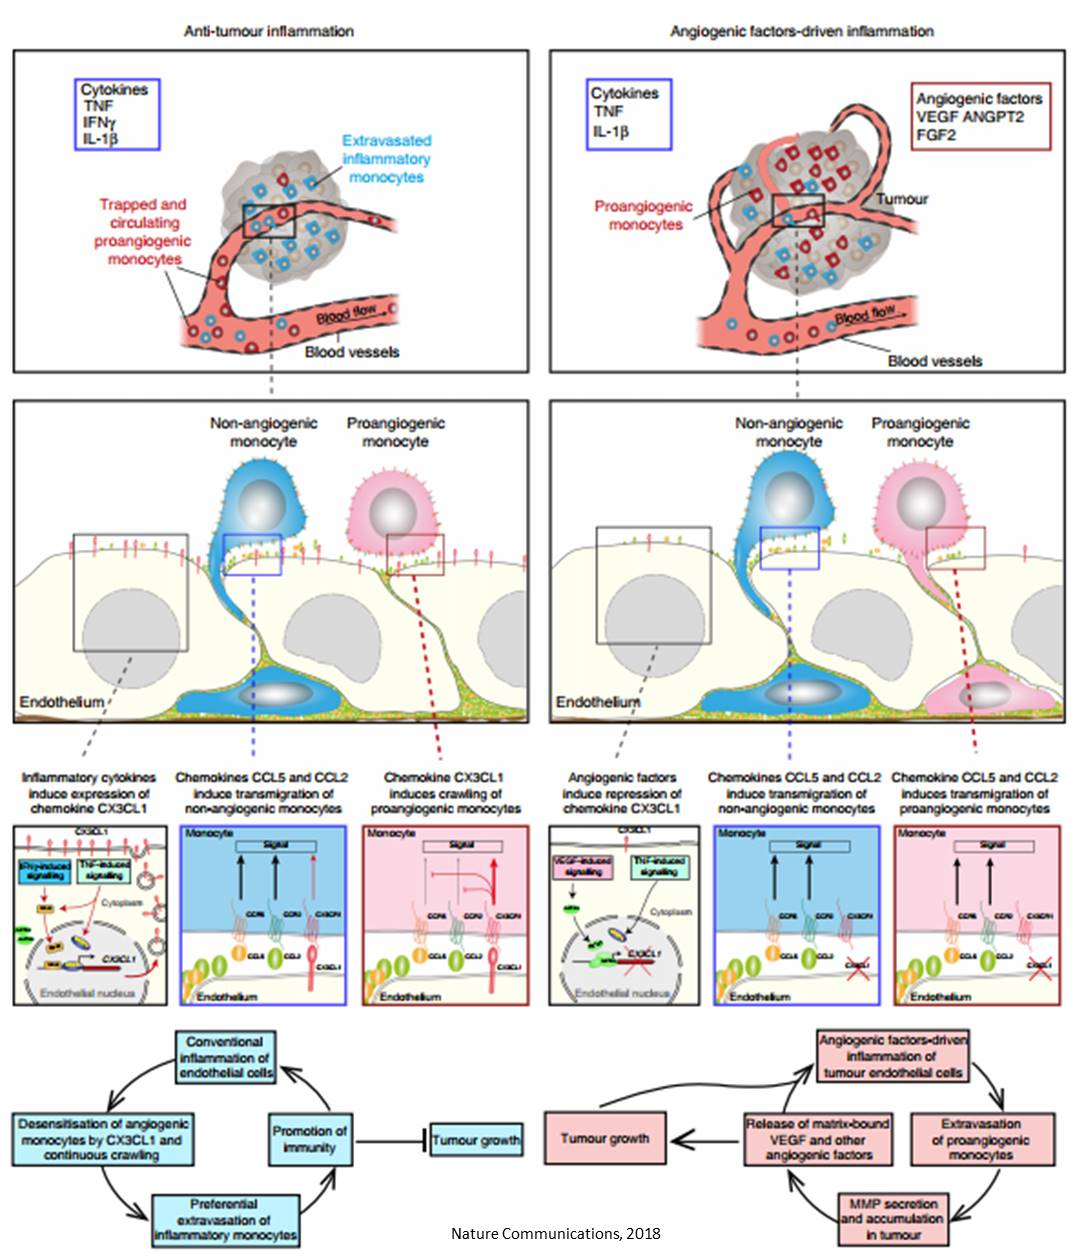 Mechanism of tumor monocyte recruitment for vascularization